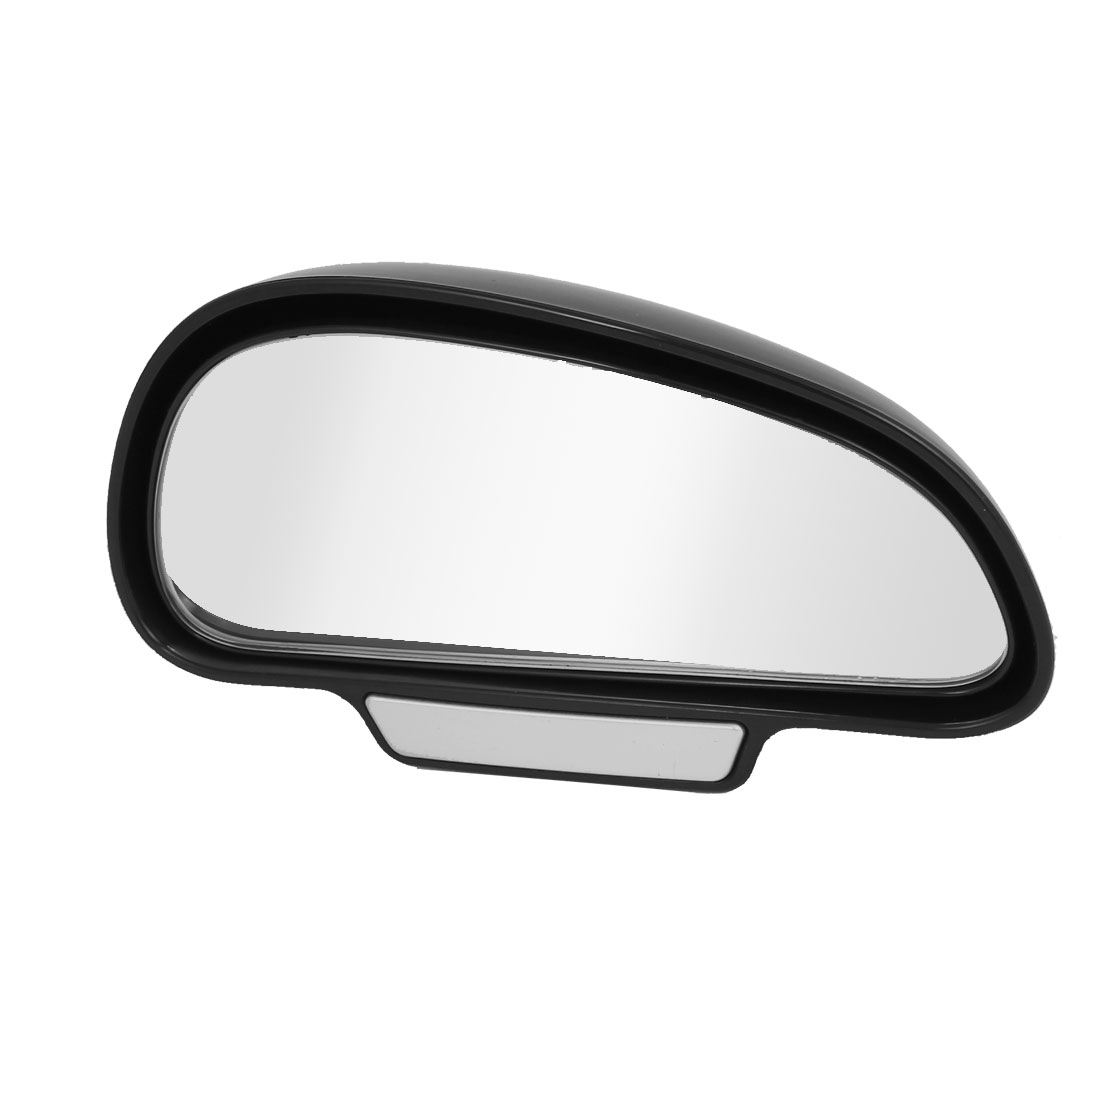 Car Vehicle Arch Wide Angle Convex Right Blind Spot Mirror Black 13 x 7cm